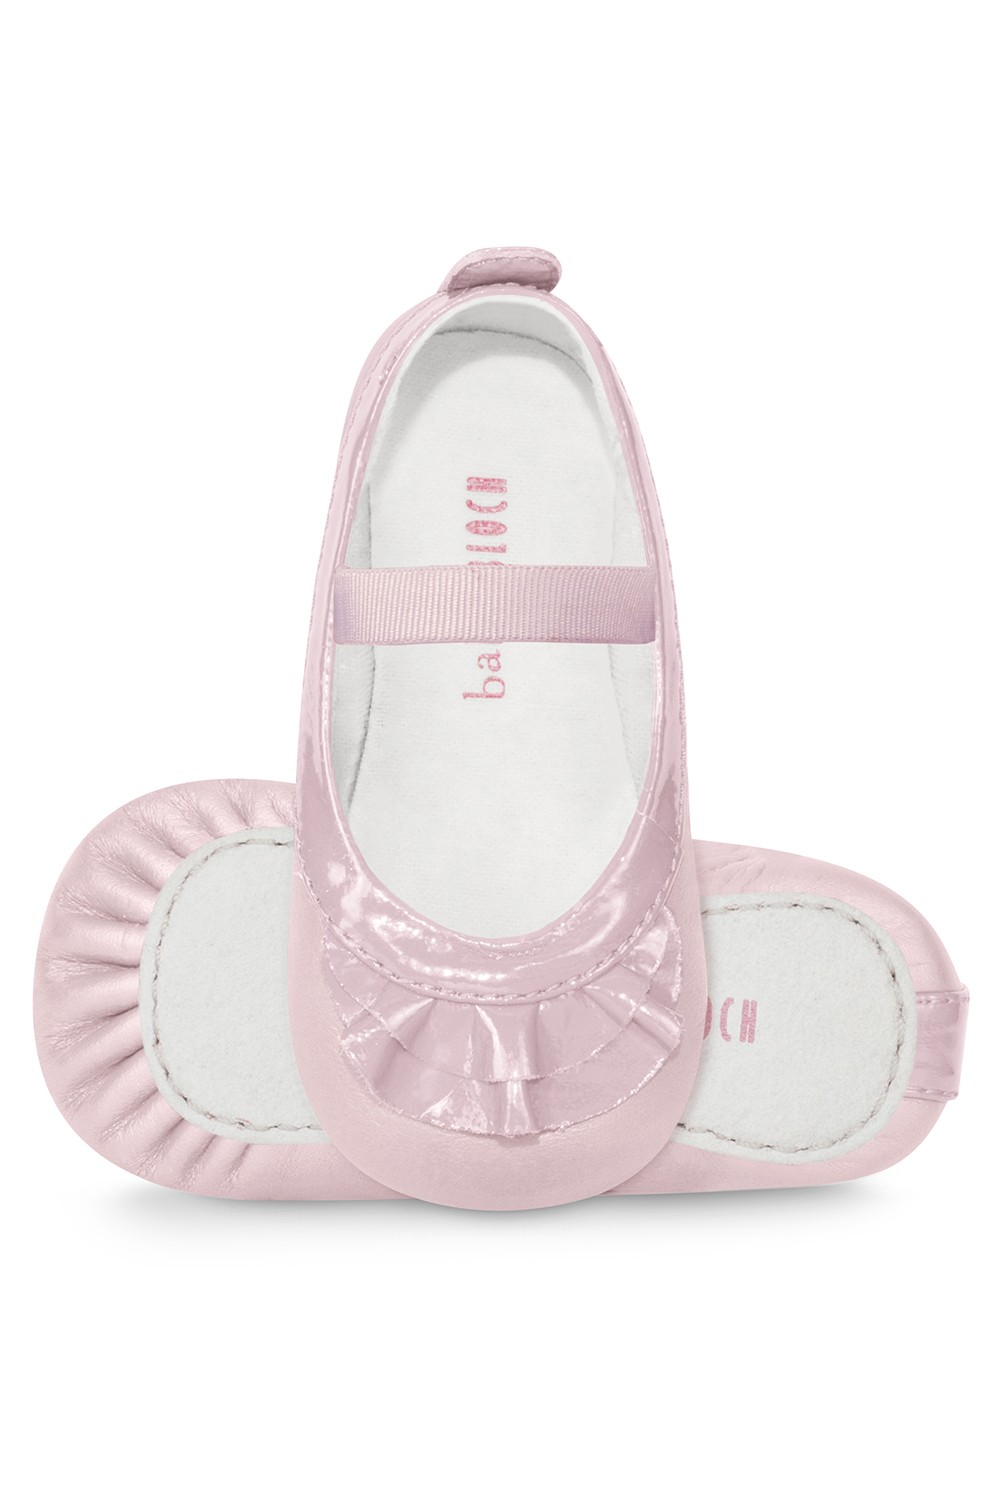 Frilled Pearl Babies Fashion Shoes